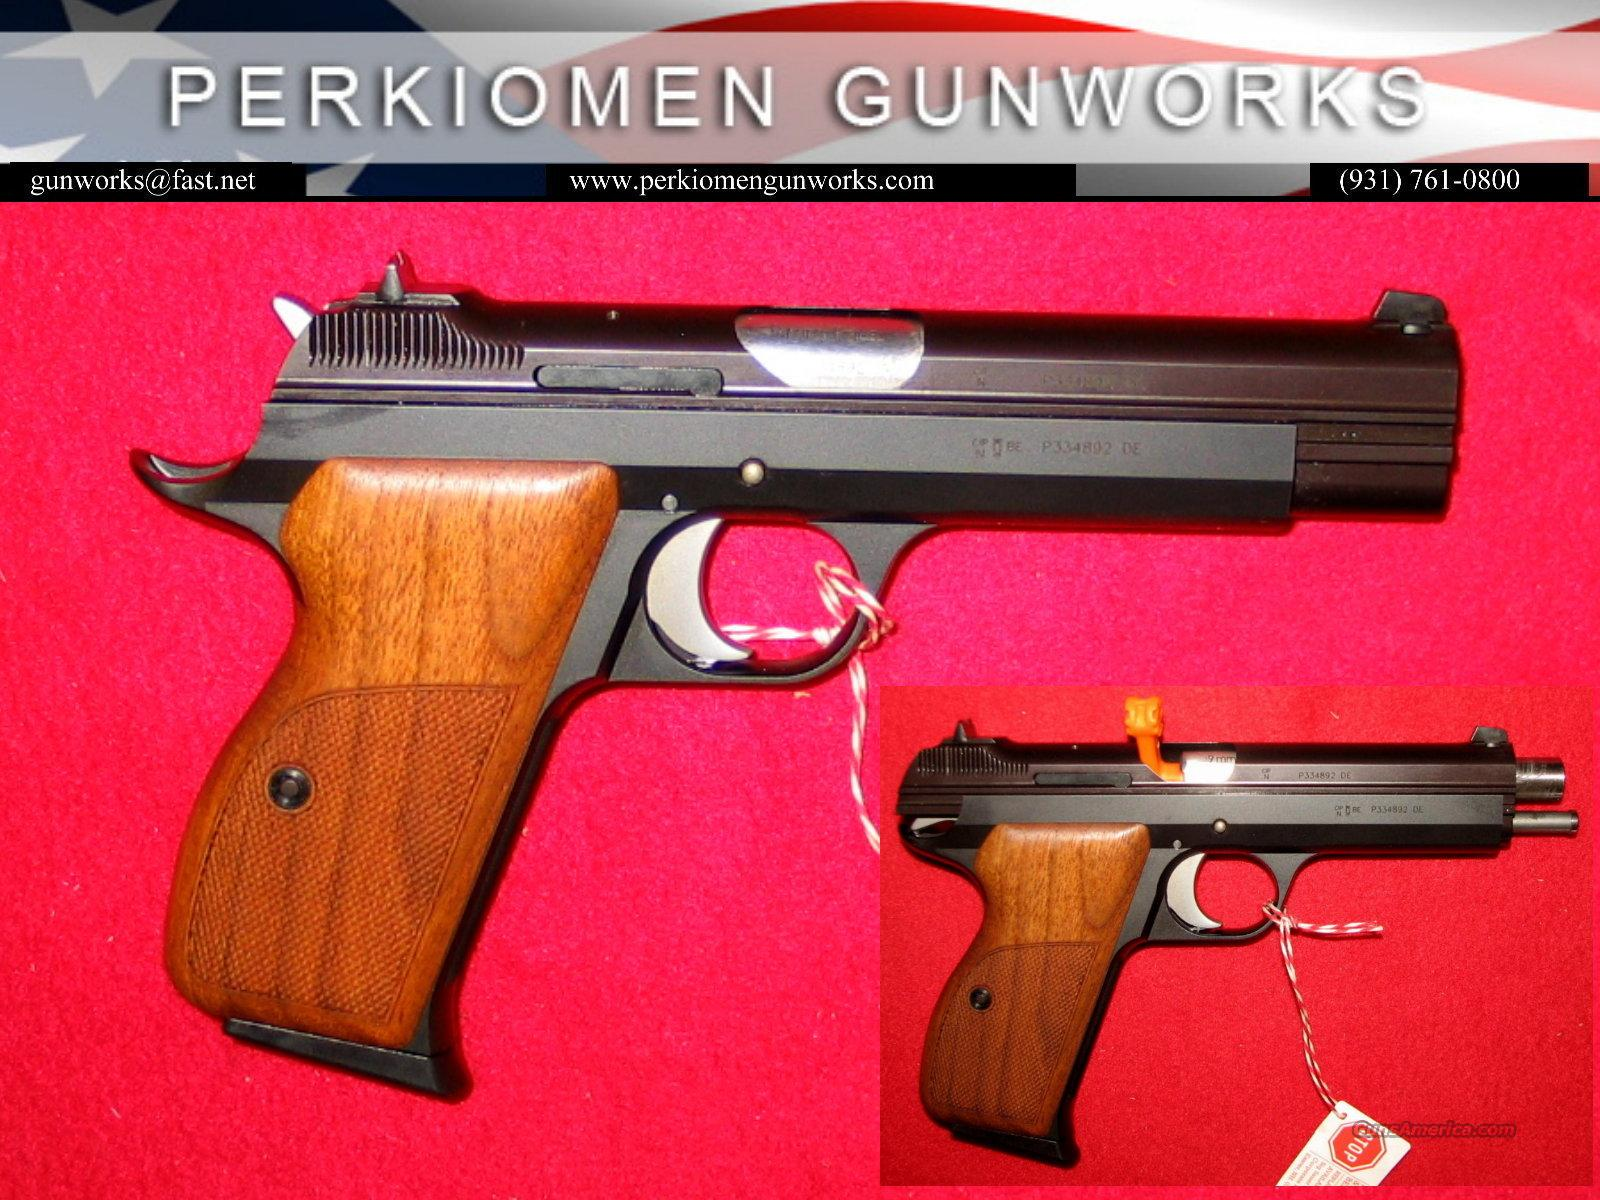 P210 Legend, 9MM - New in Box  Guns > Pistols > Sig - Sauer/Sigarms Pistols > Other